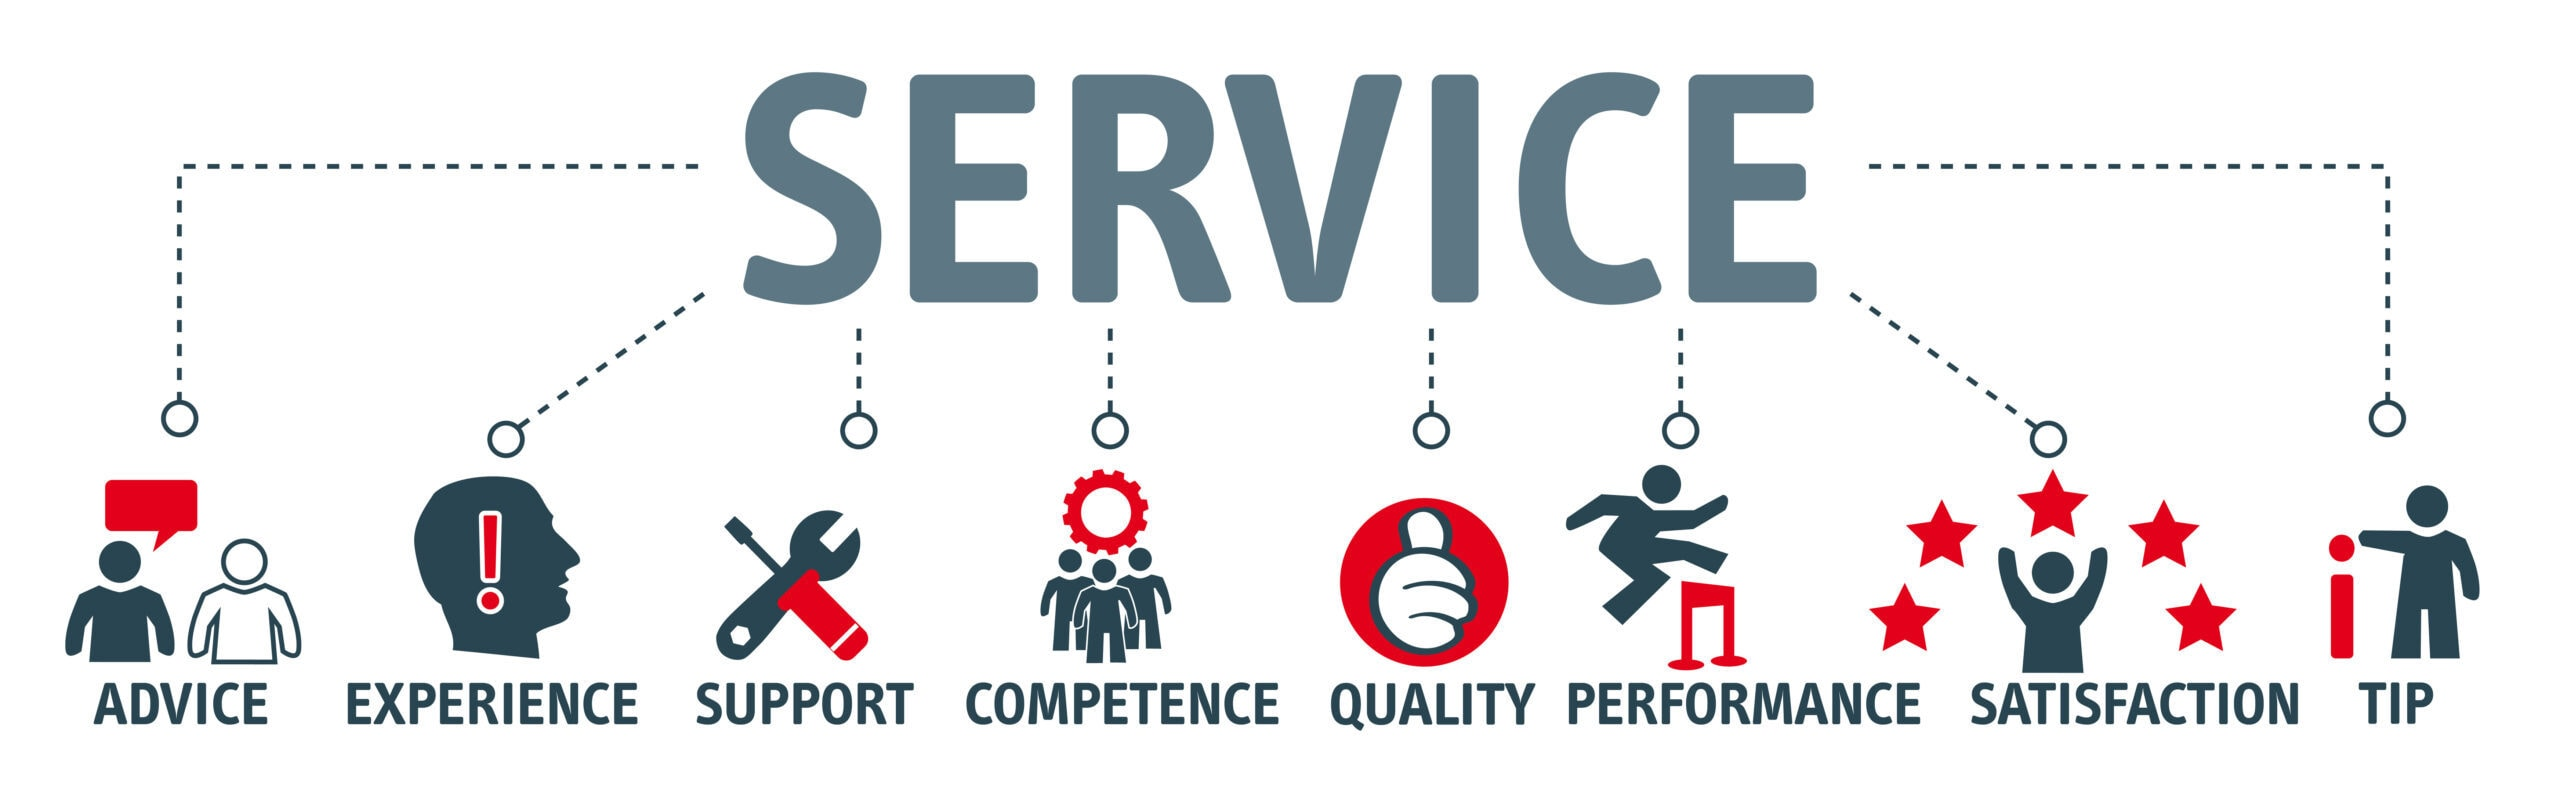 Banner Service concept. Keywords and pictograms